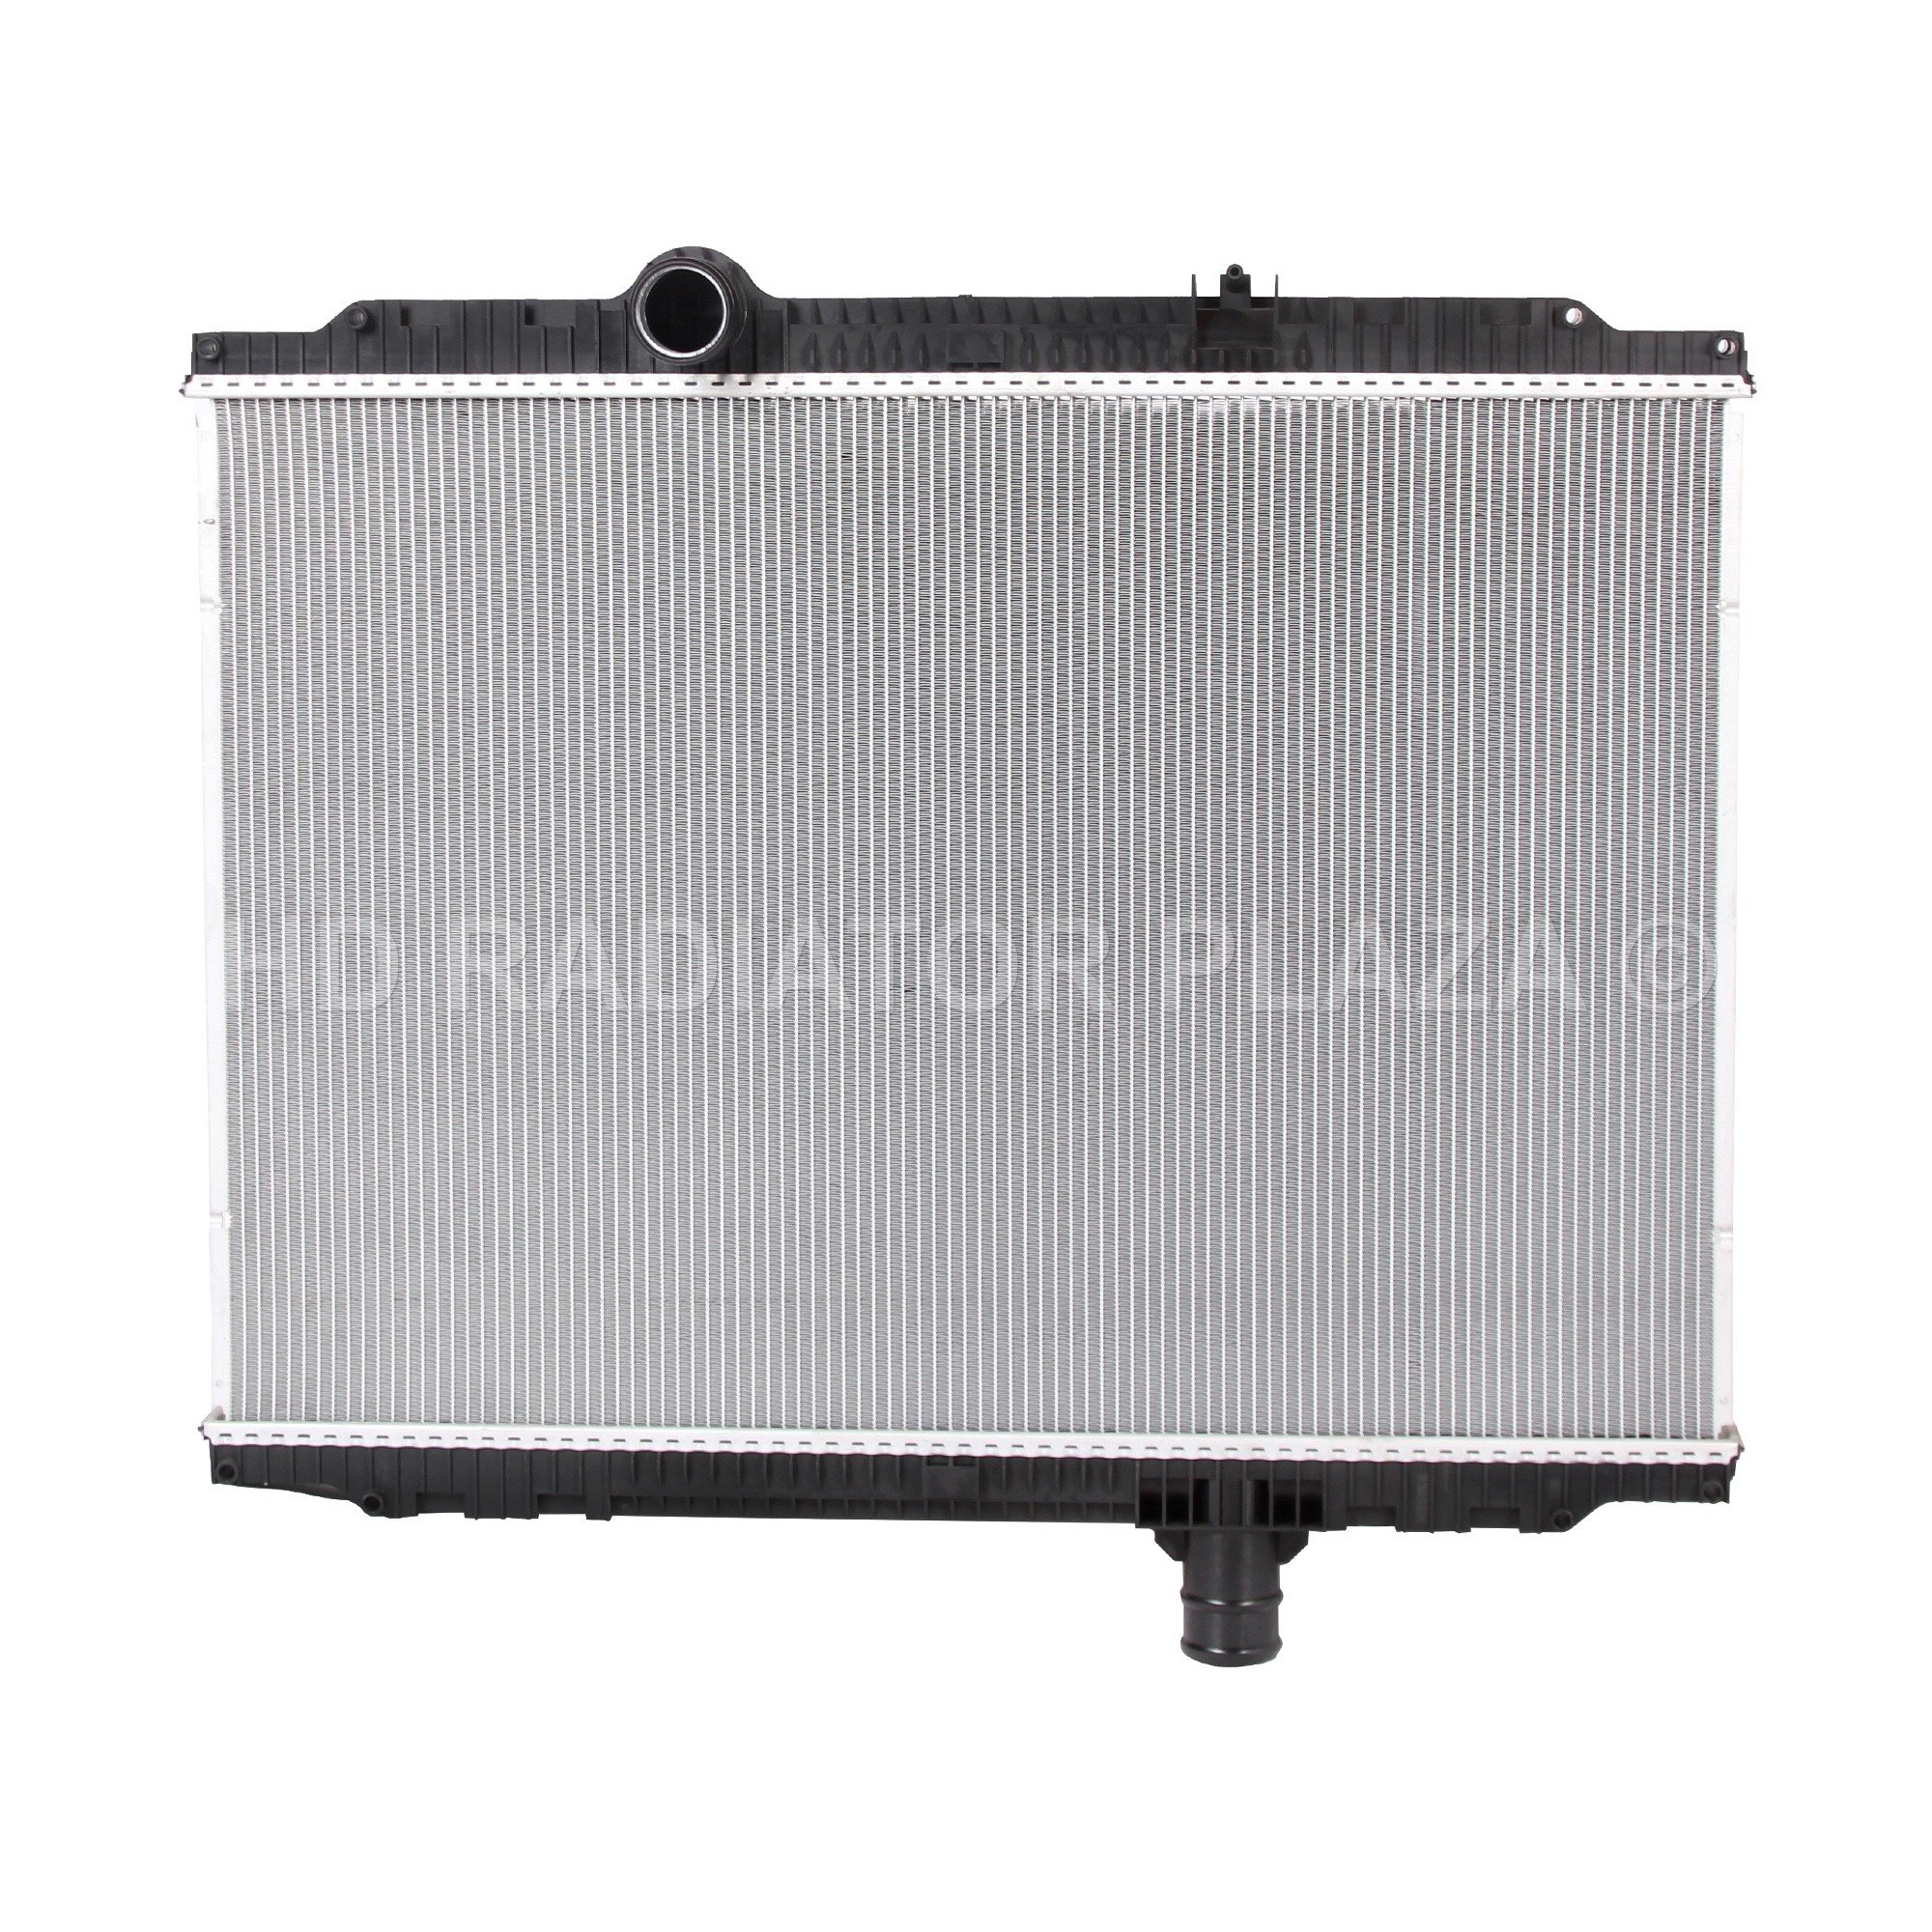 2011-2013 Kenworth / Peterbilt Radiator